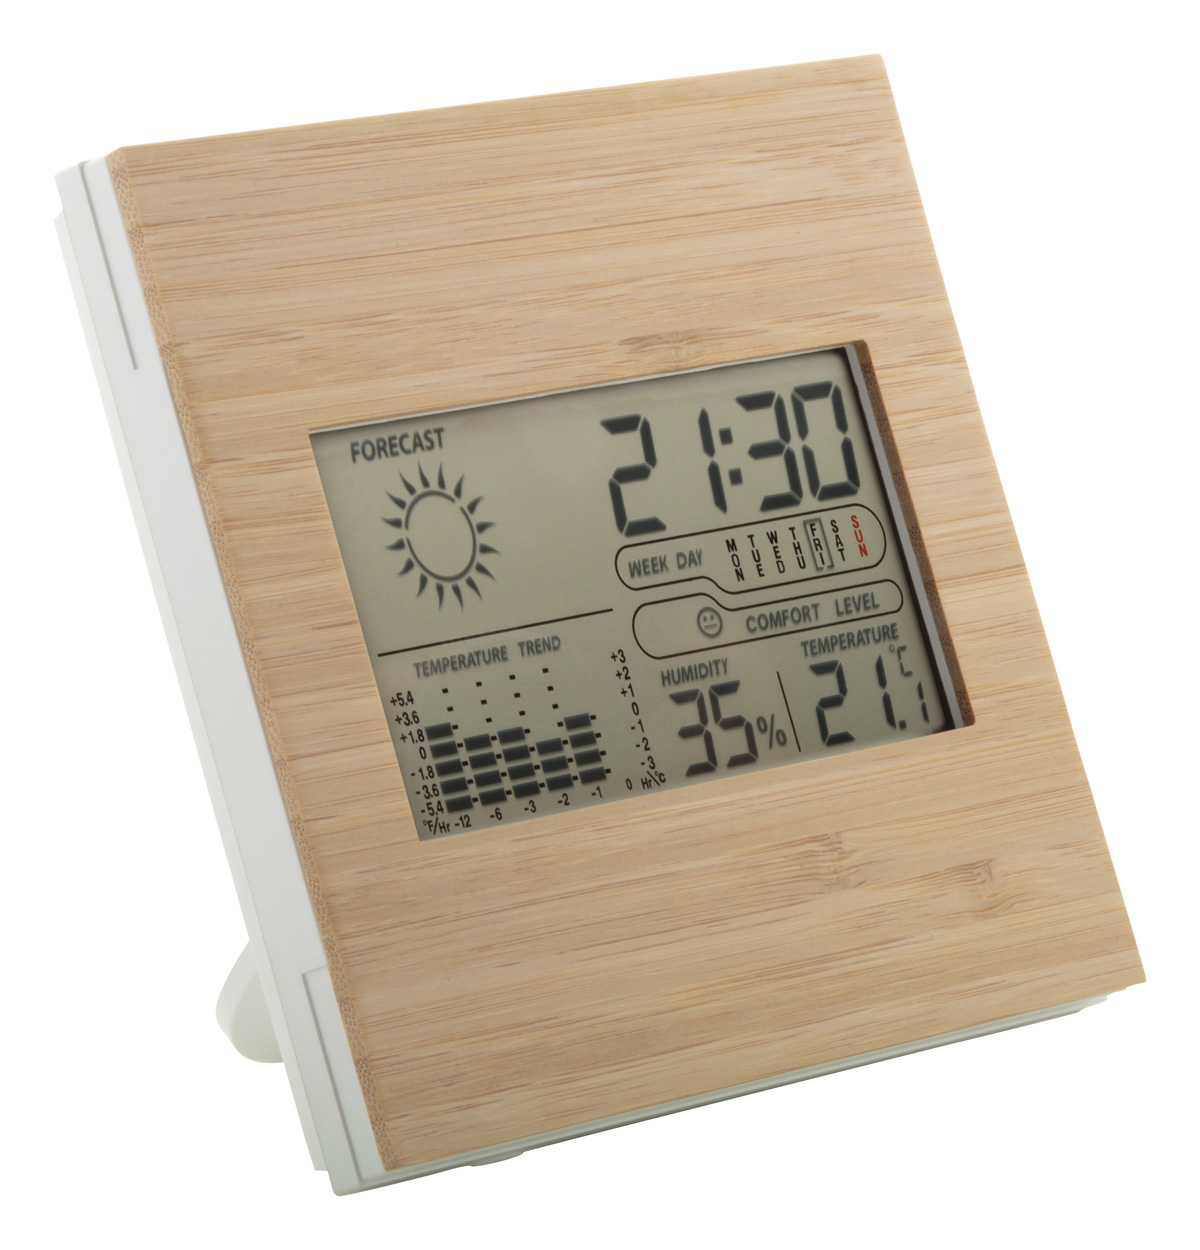 Boocast bamboo weather station